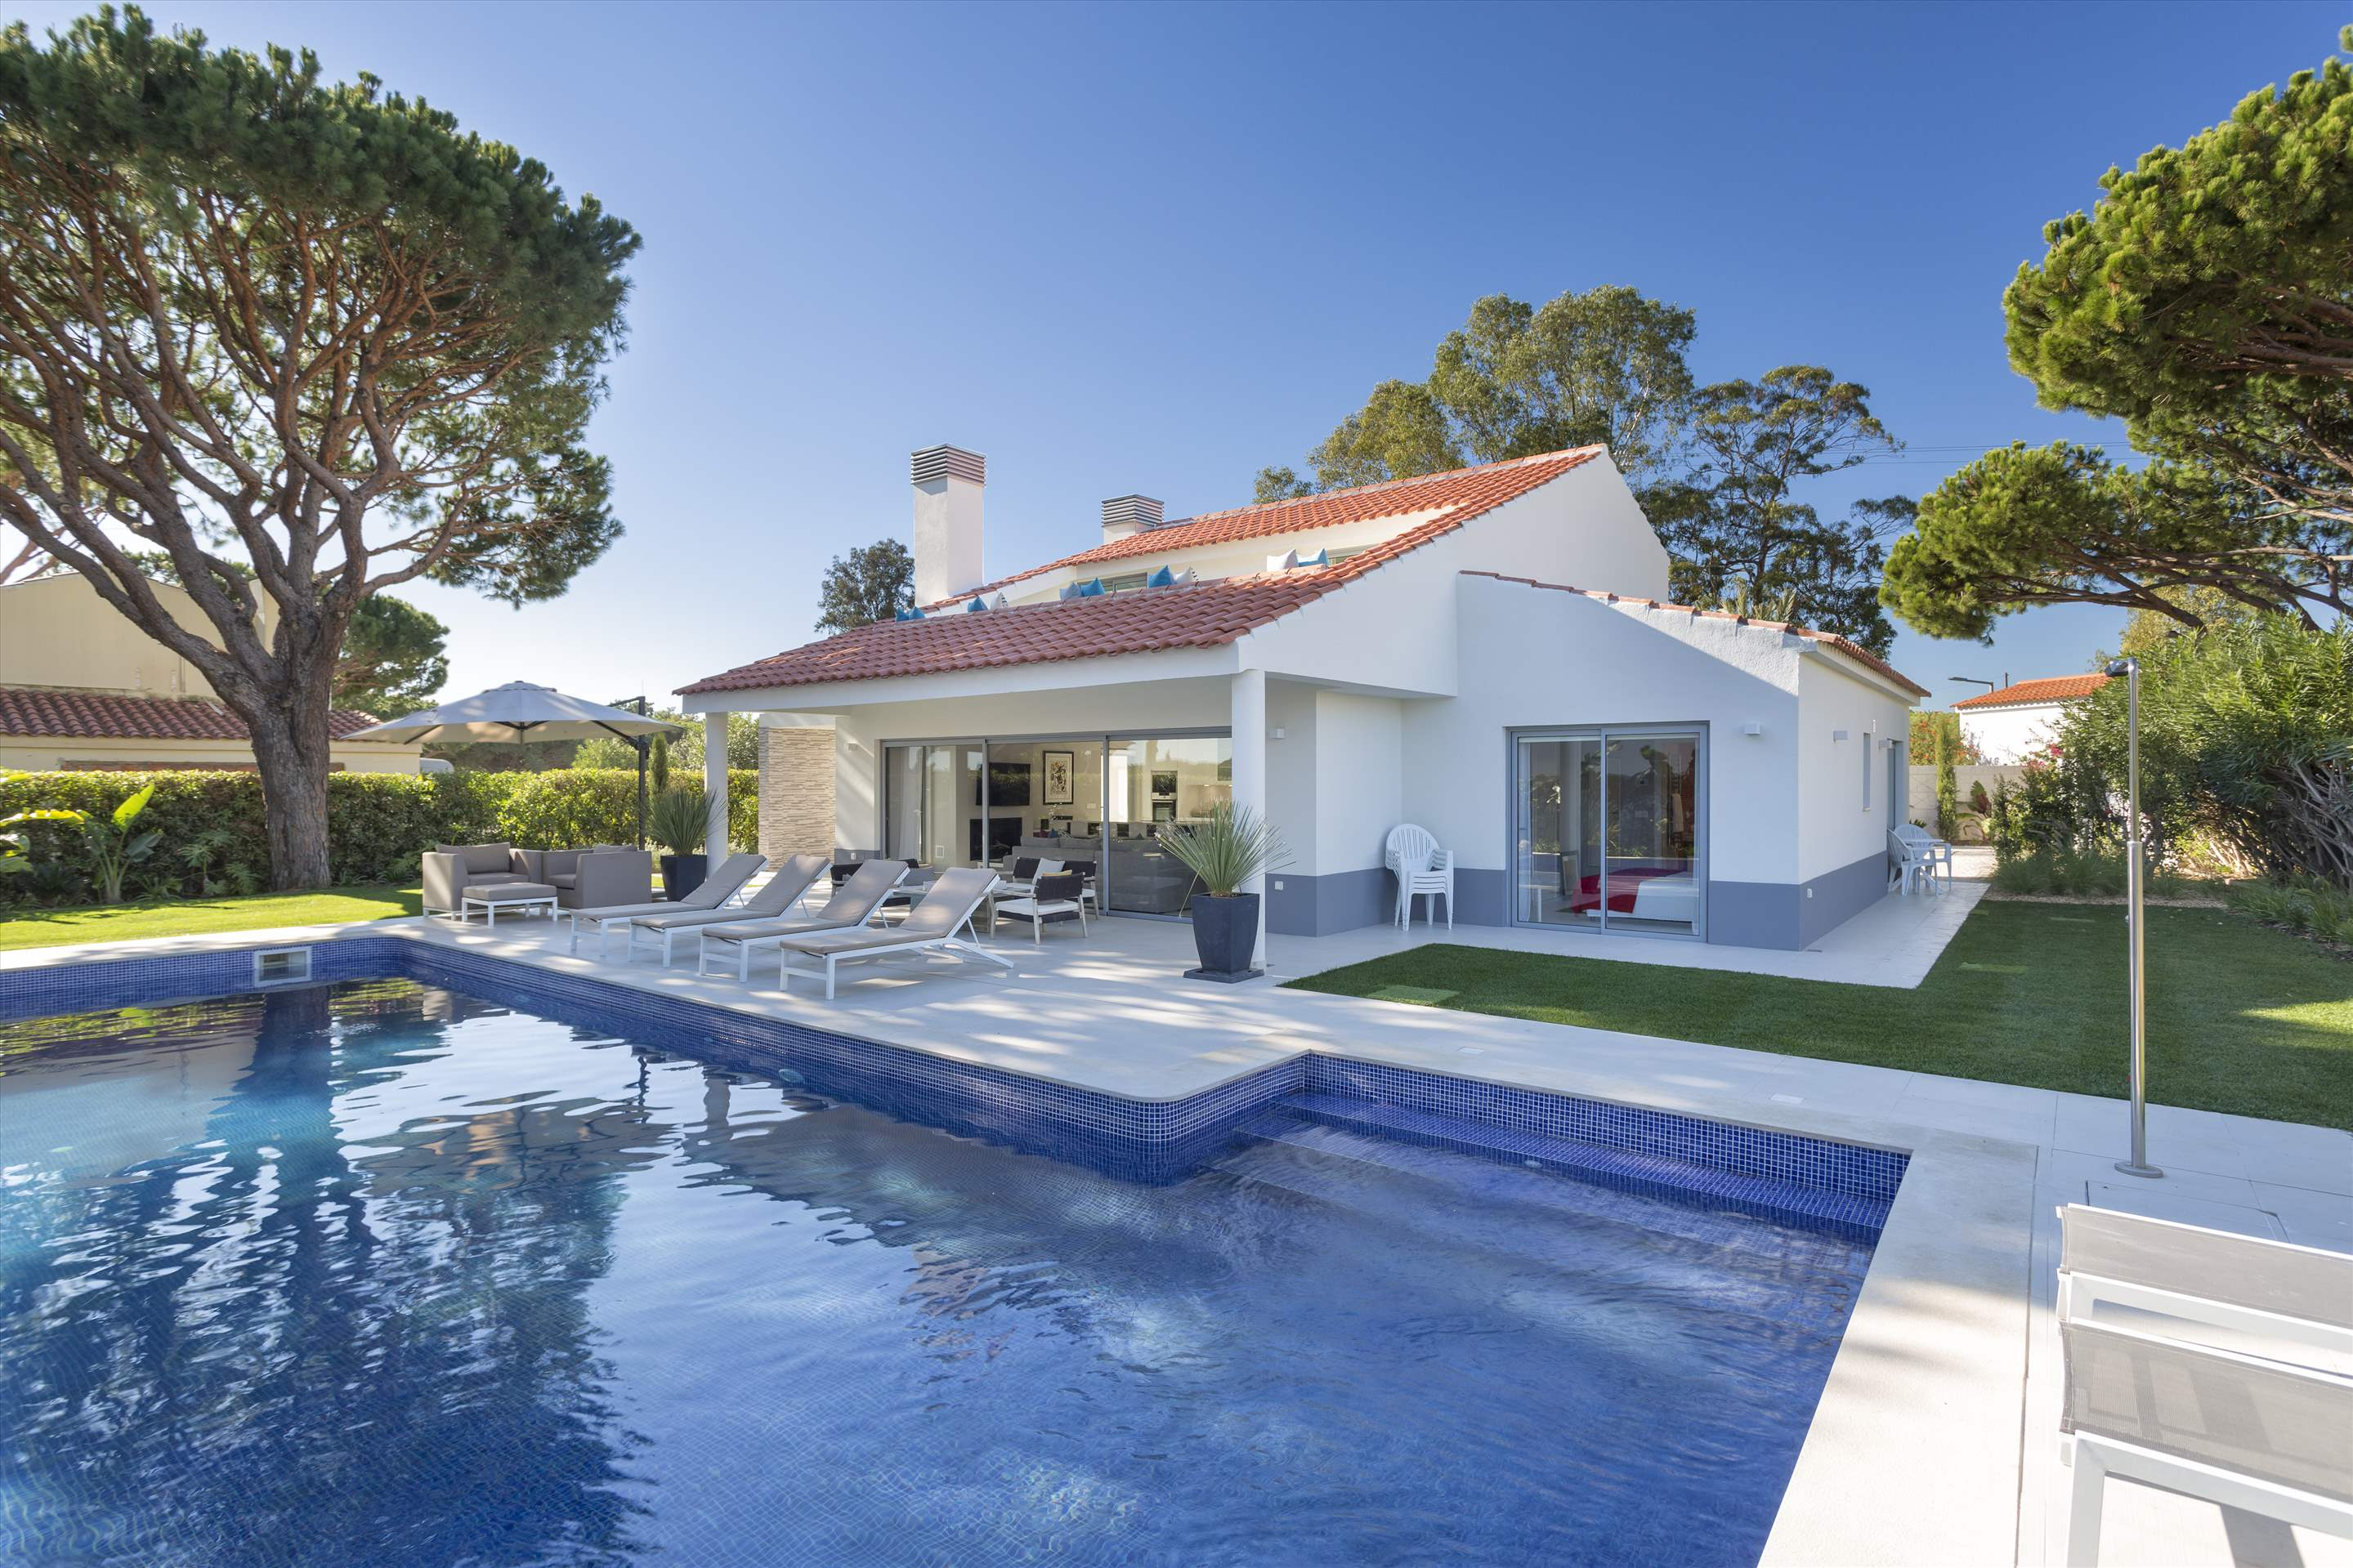 Casa Coral, 4 bedroom villa in Vale do Lobo, Algarve